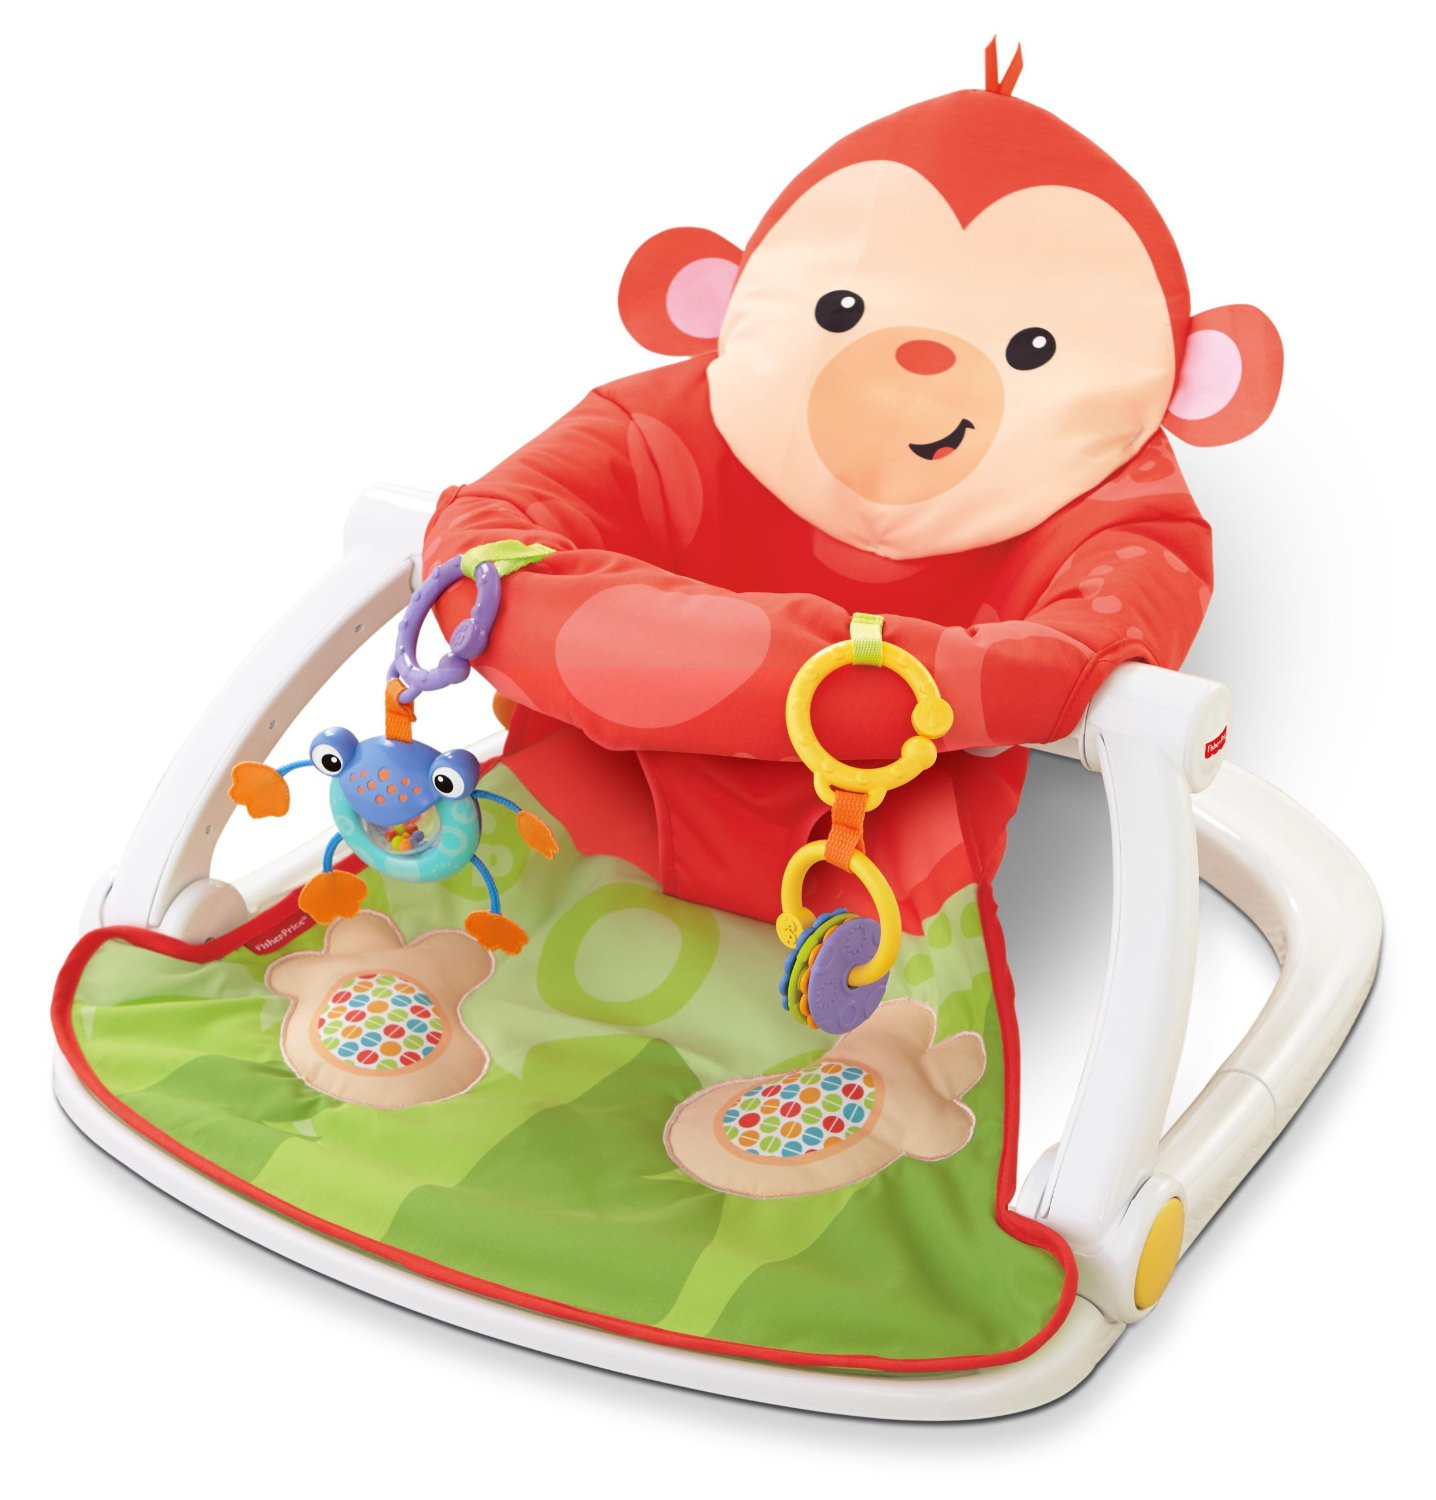 5 Best Floor Seat Keep babies fortable and help them maintain